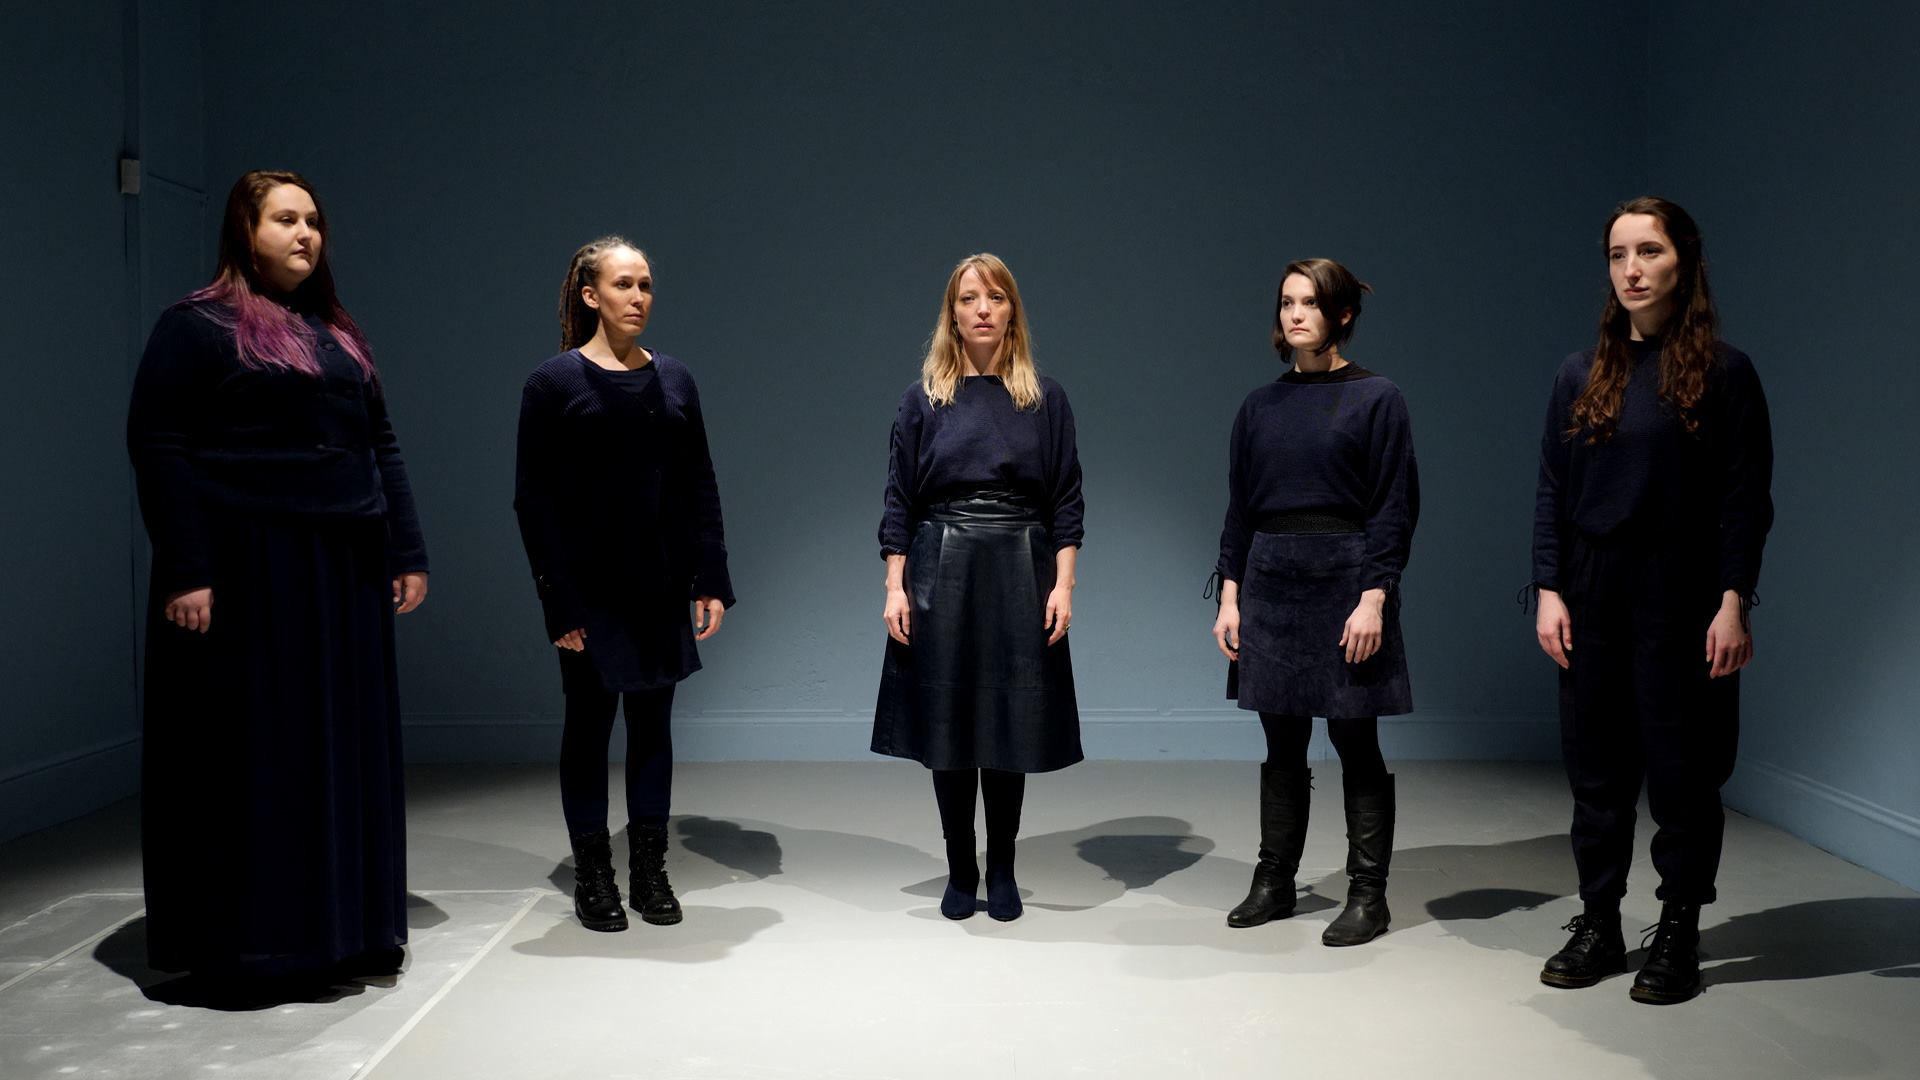 DÓCHAS: HOPE (PART 2)  2018 | Ireland | 5'03'' Director / Choreographer: Ceara Conway  The piece explores universal themes of praise, tragedy and hope. The five voices of the Water Ensemble represent five boats and the unspoken presence of women in the story.